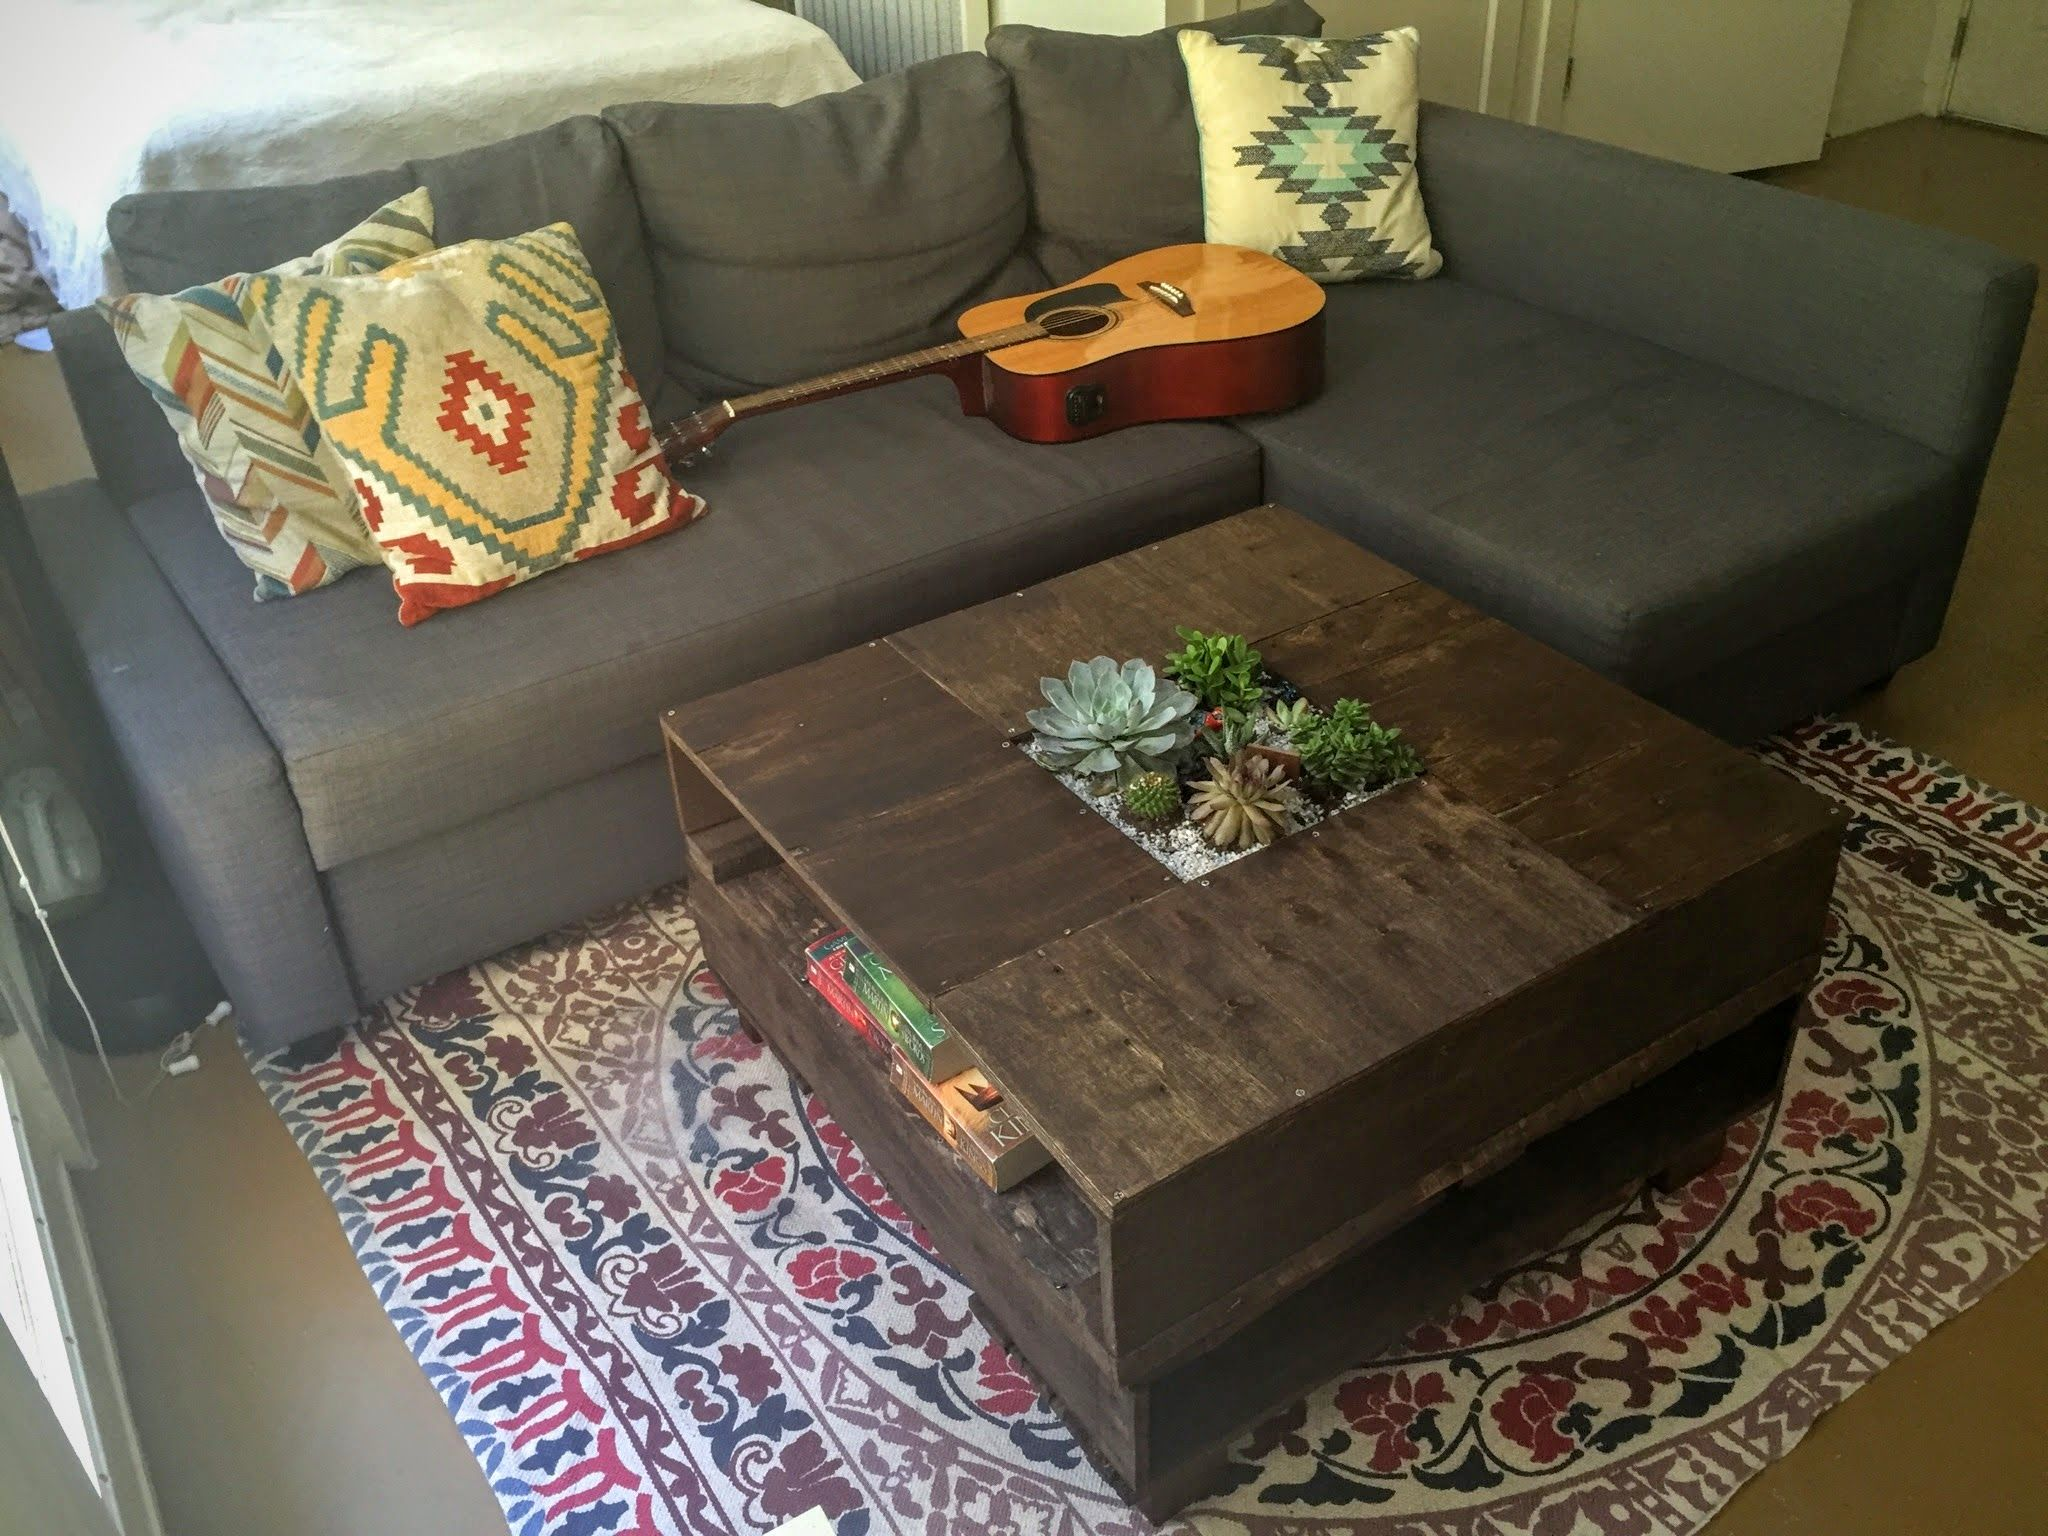 i made a succulent garden coffee table out of repurposed pallet